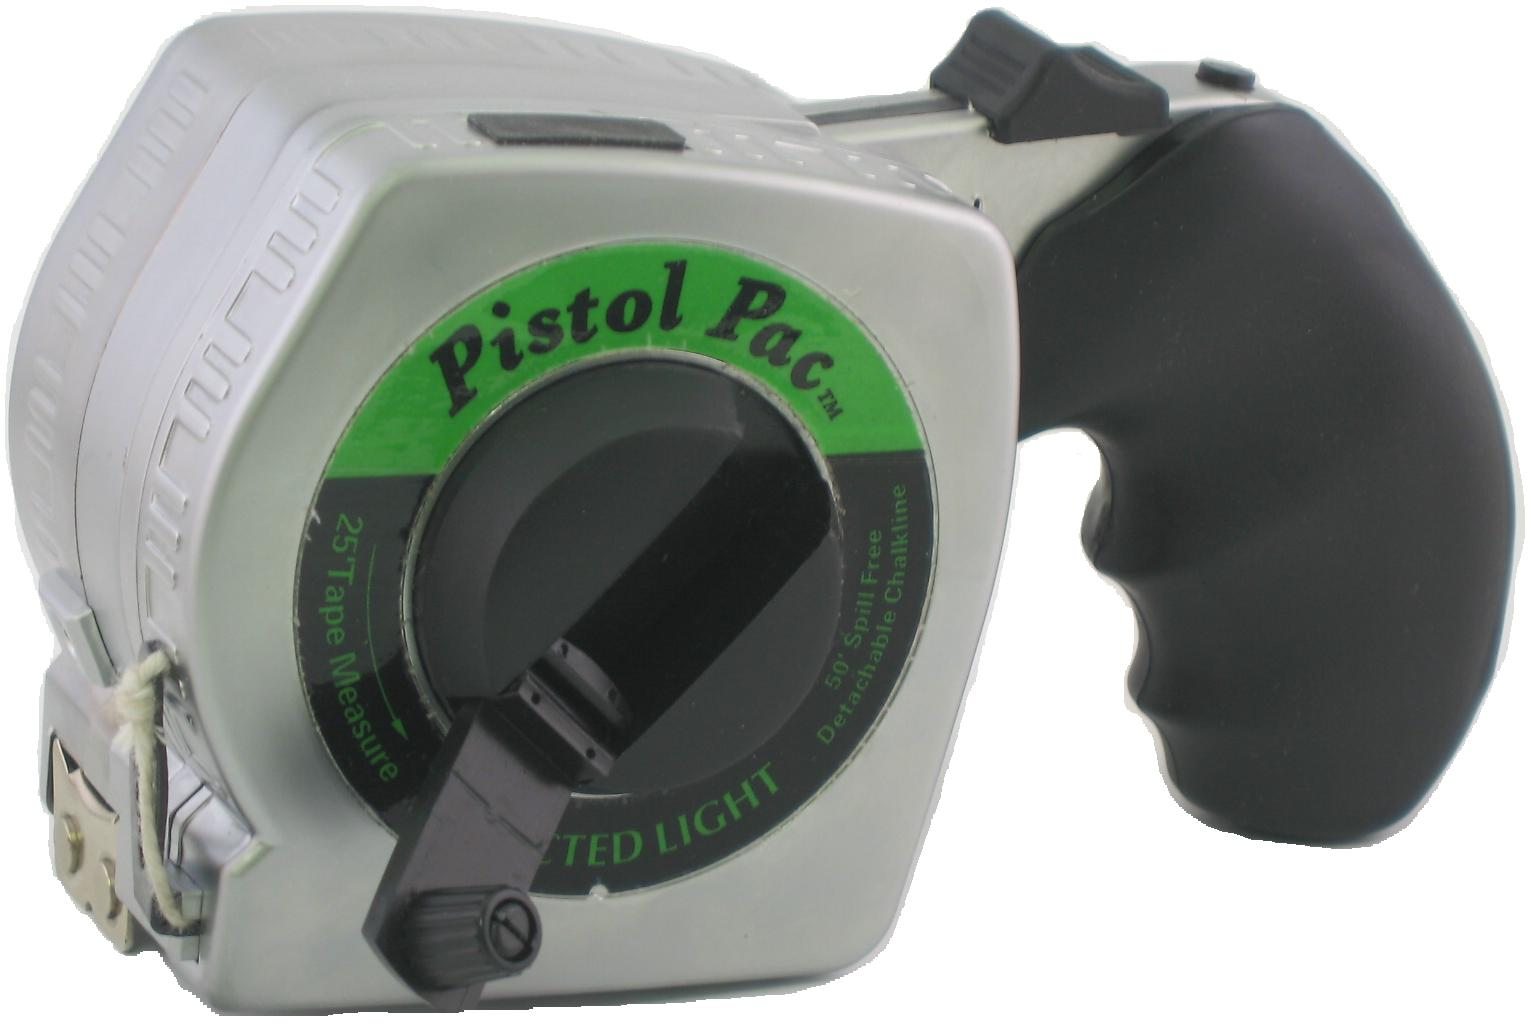 Pistol Pac-3 In 1 Tape Measure